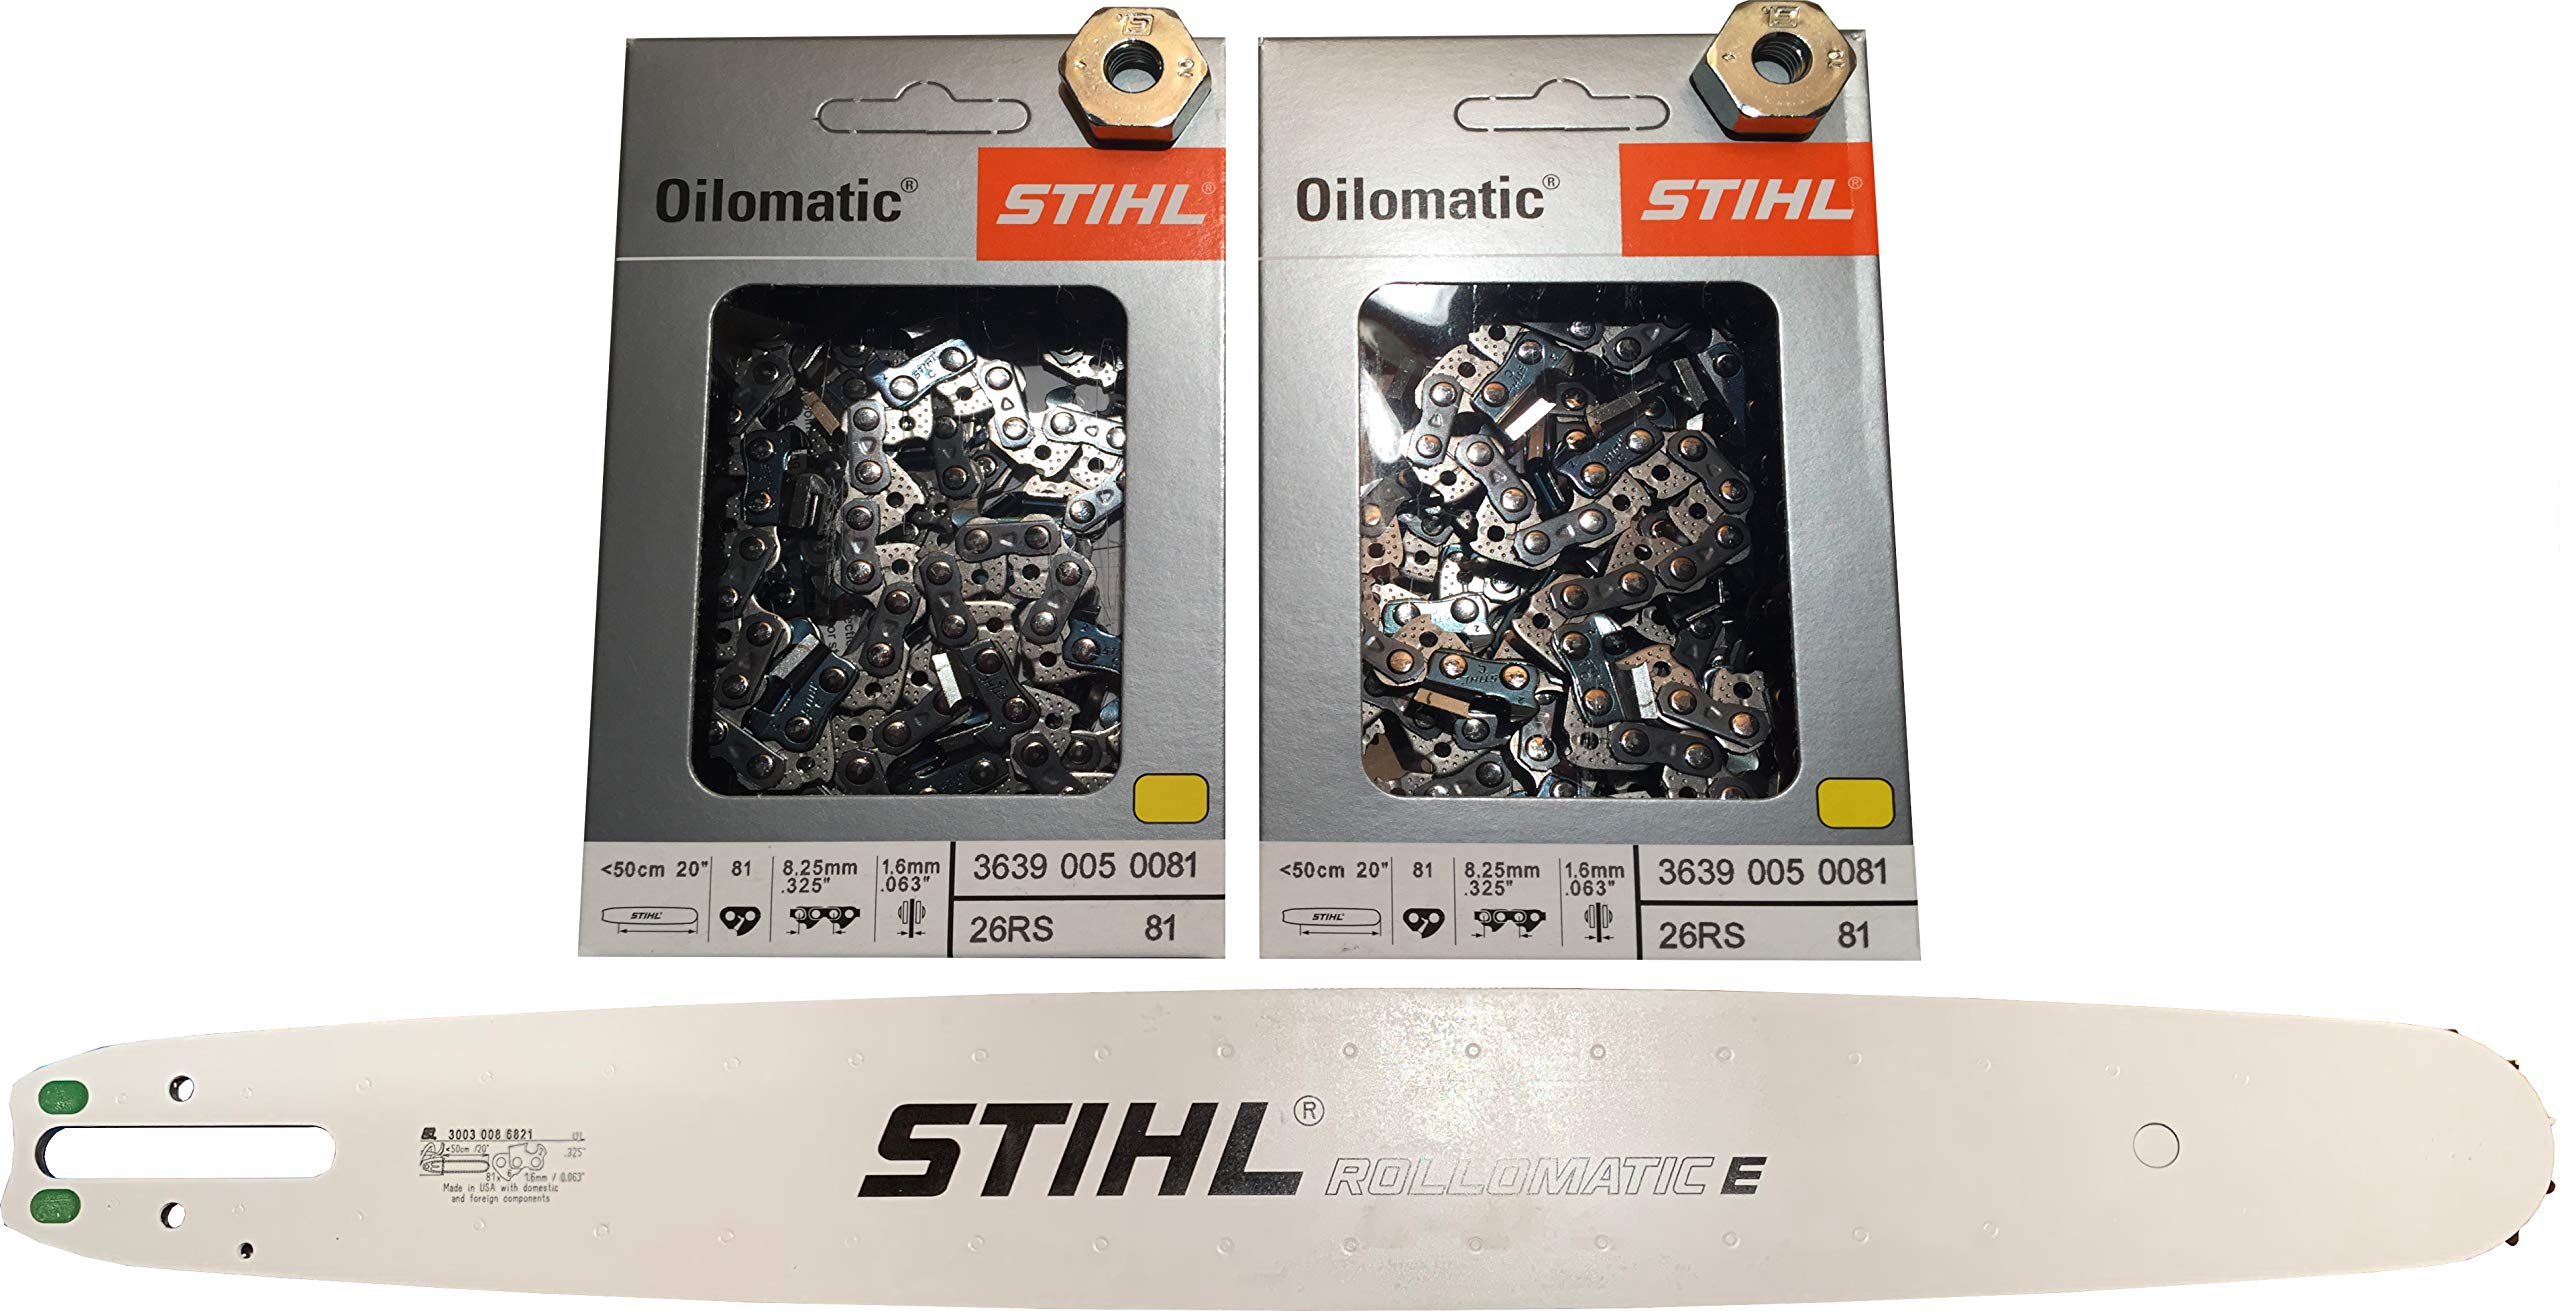 Stihl Set, 2 Pack Chainsaw Chains 26RS 81 Drive Links.325 Pitch.063 Gauge, 20'' Guide Bar 3003 008 6821, 2 Bar Cover Nuts 0000 955 0801, Combination Set